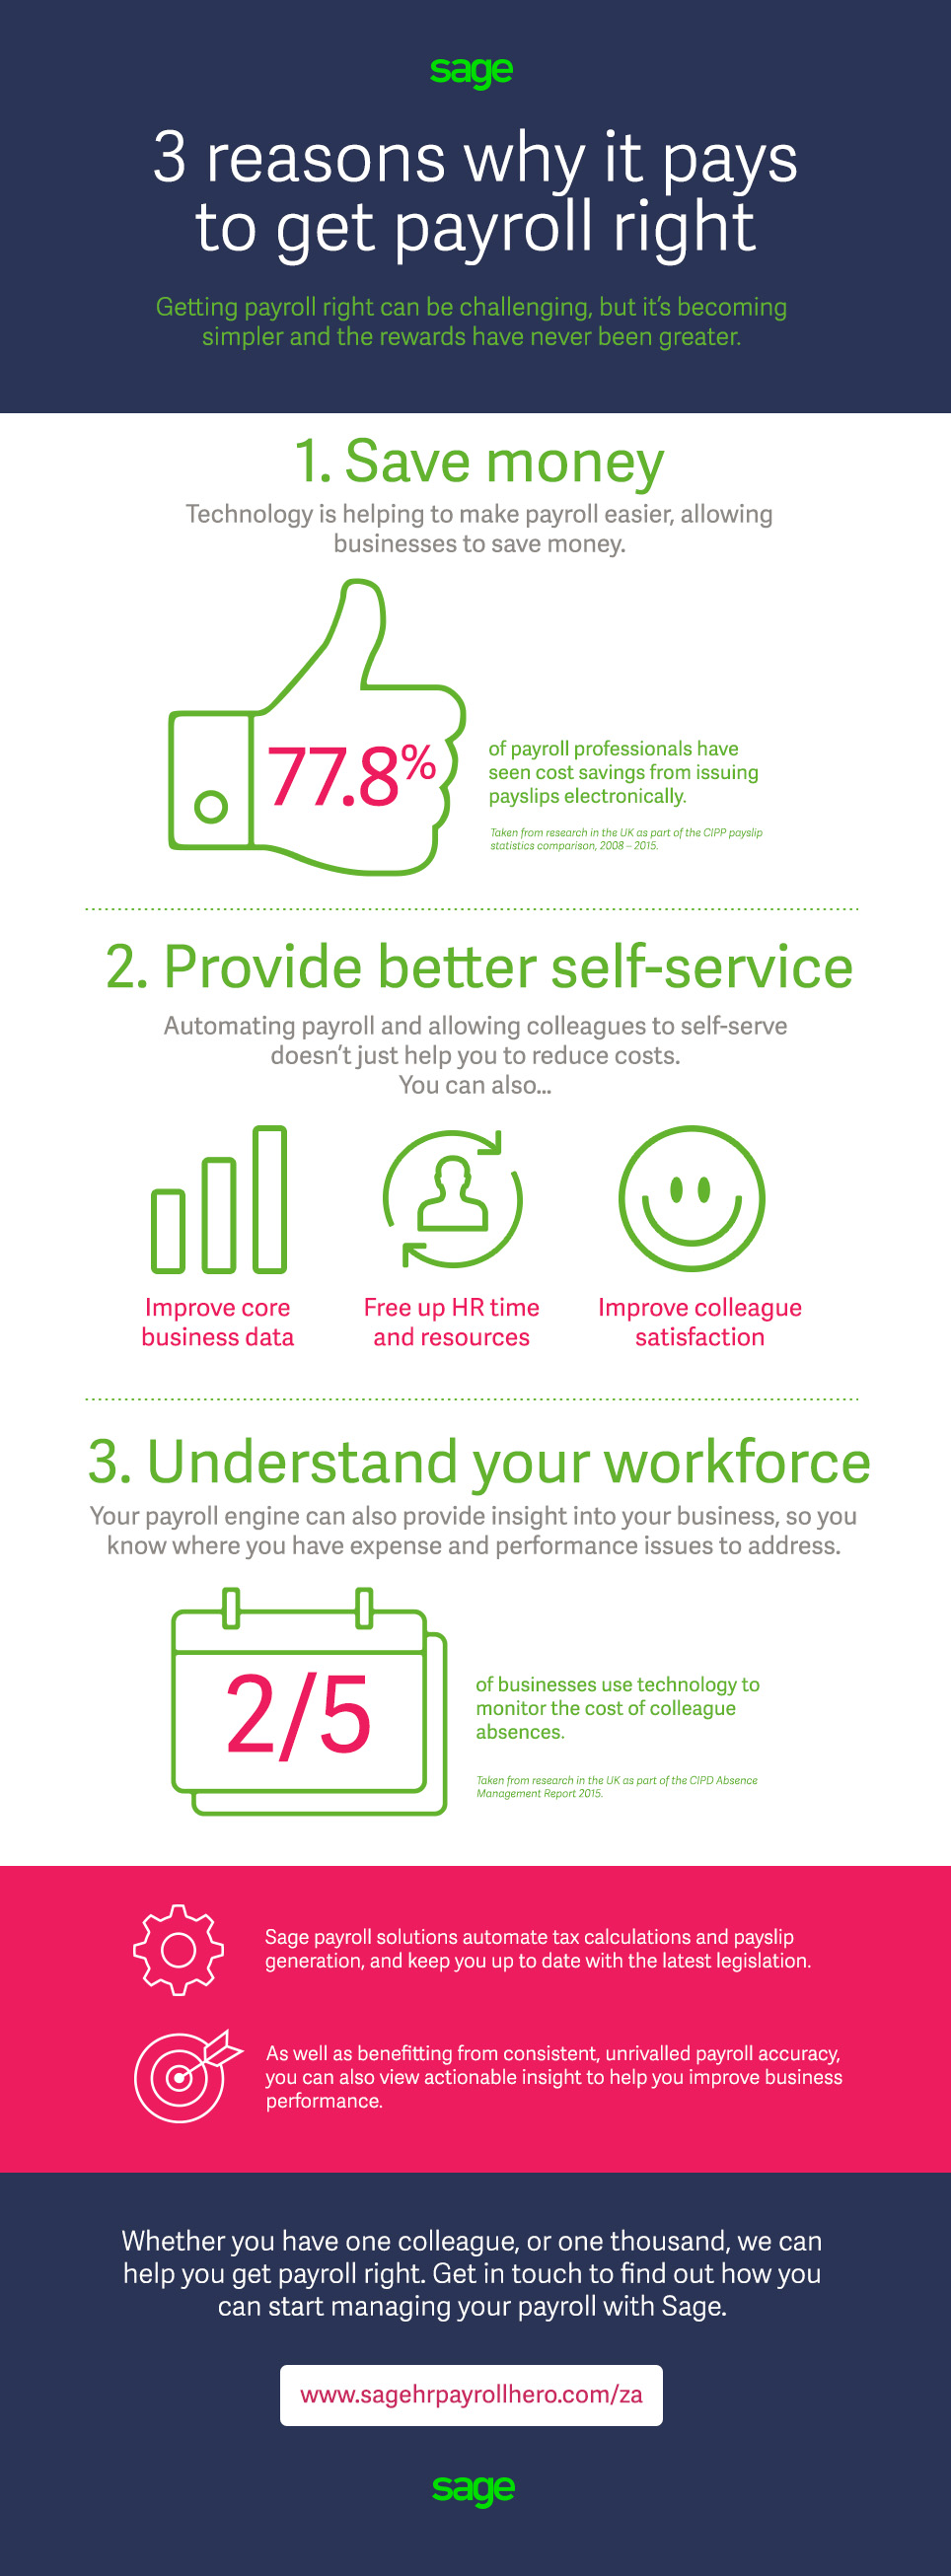 Infographic: 3 reasons why it pays to get payroll right